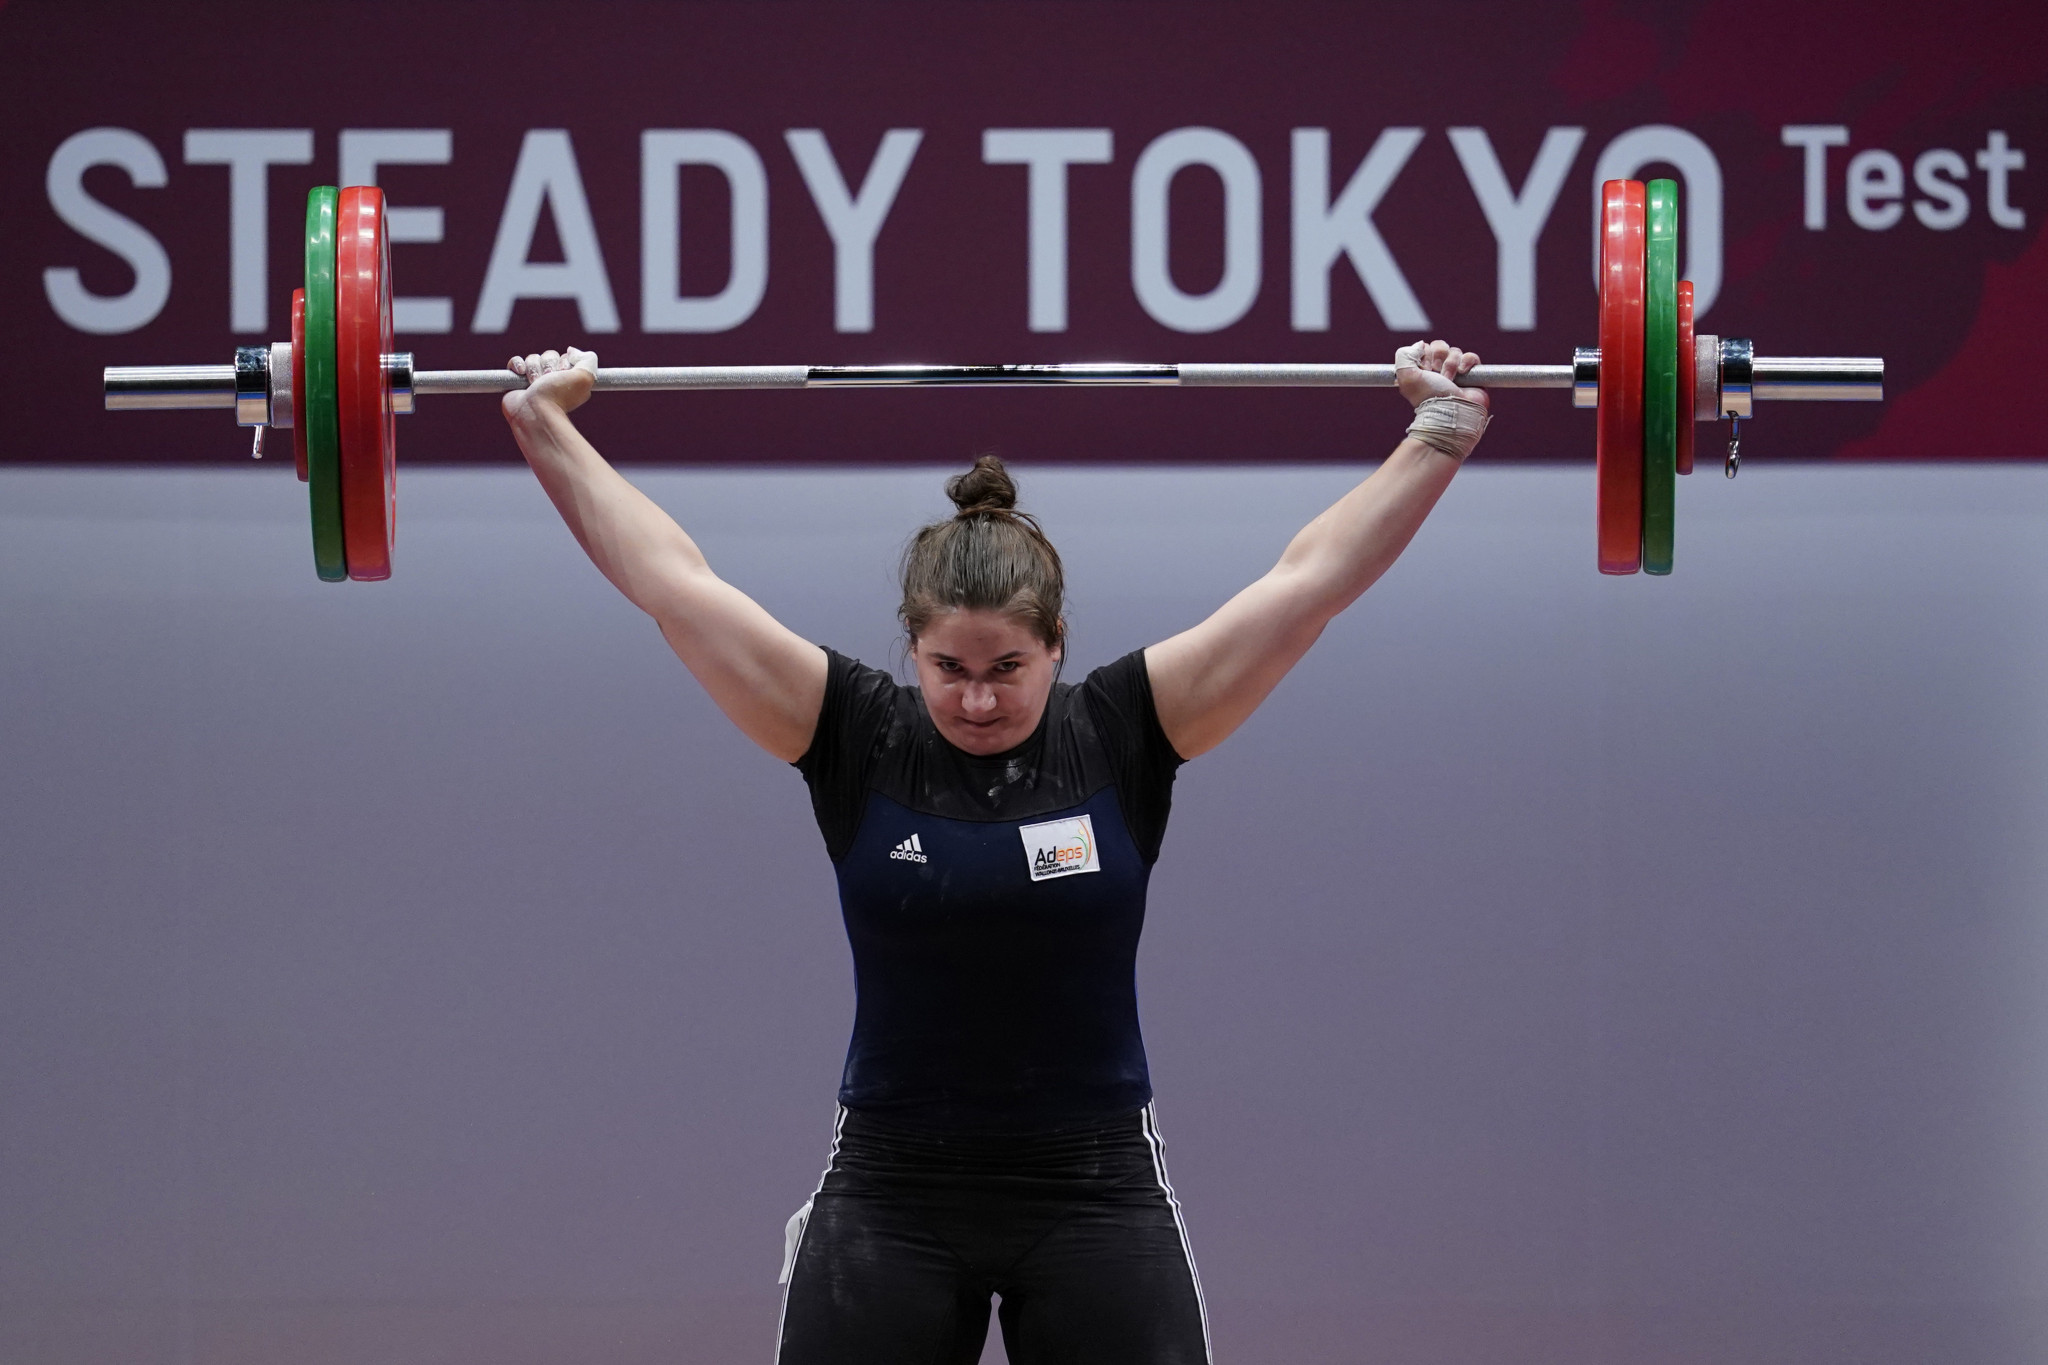 Exclusive: Rival weightlifter speaks out on transgender Hubbard's presence at Tokyo 2020